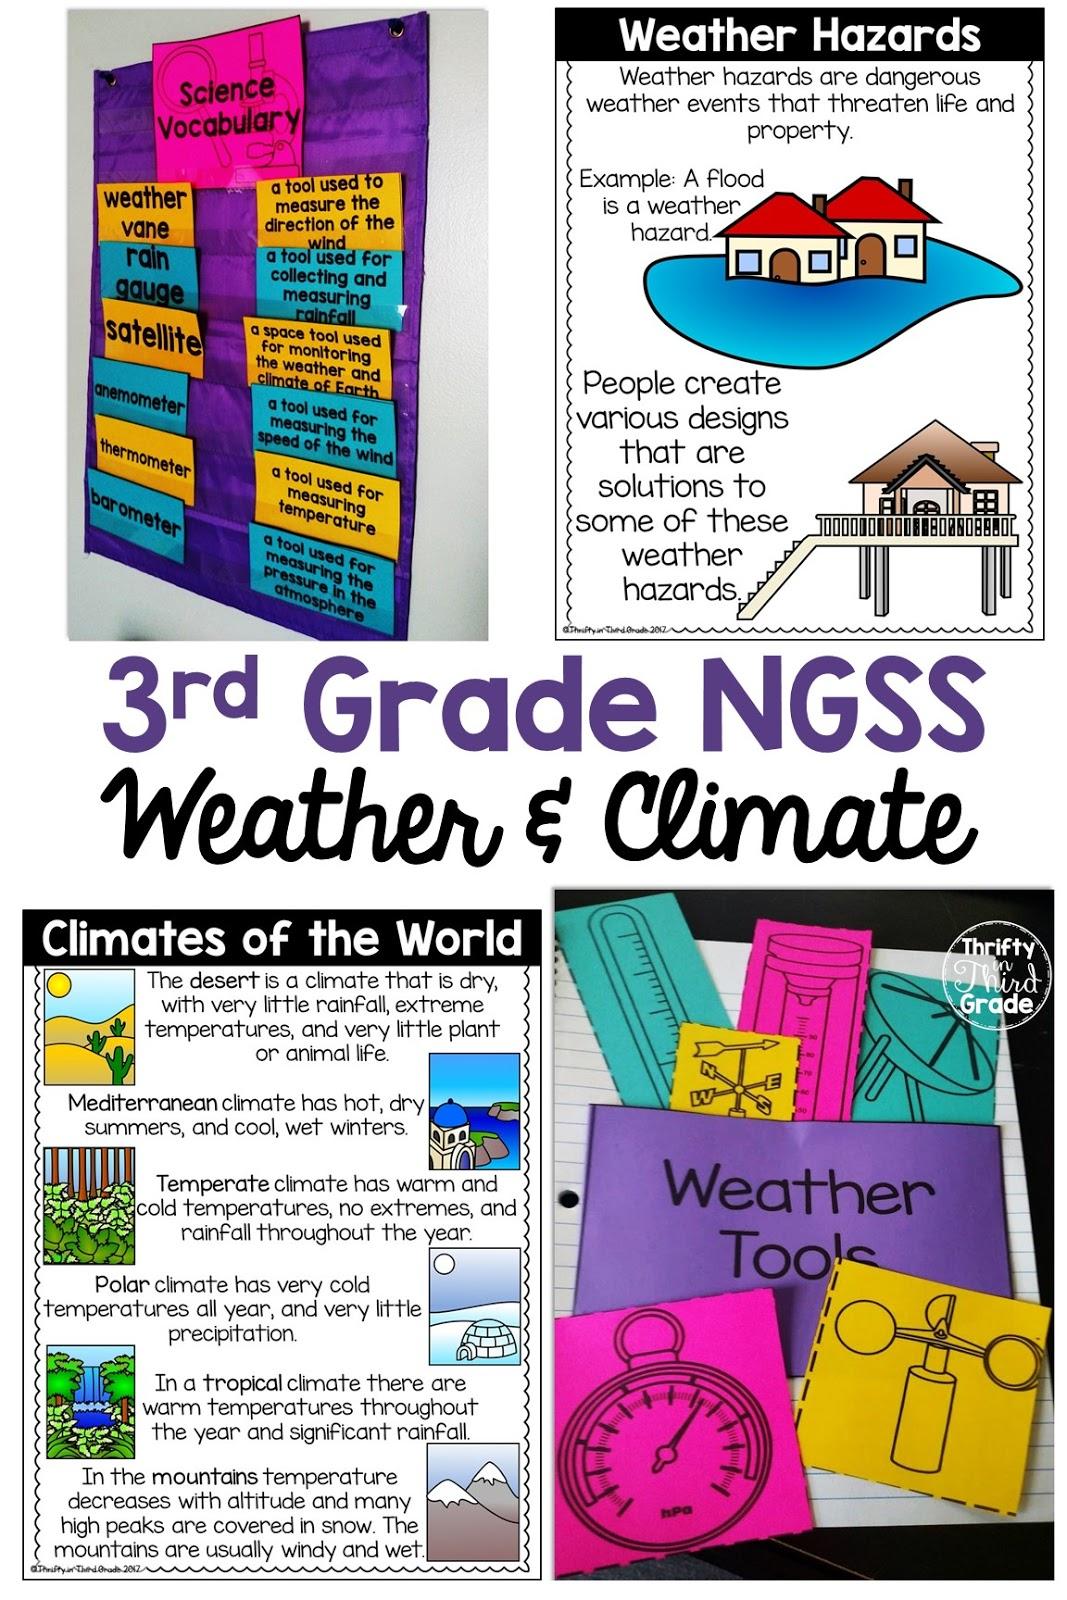 2nd Grade Science Lesson Plans On Weather